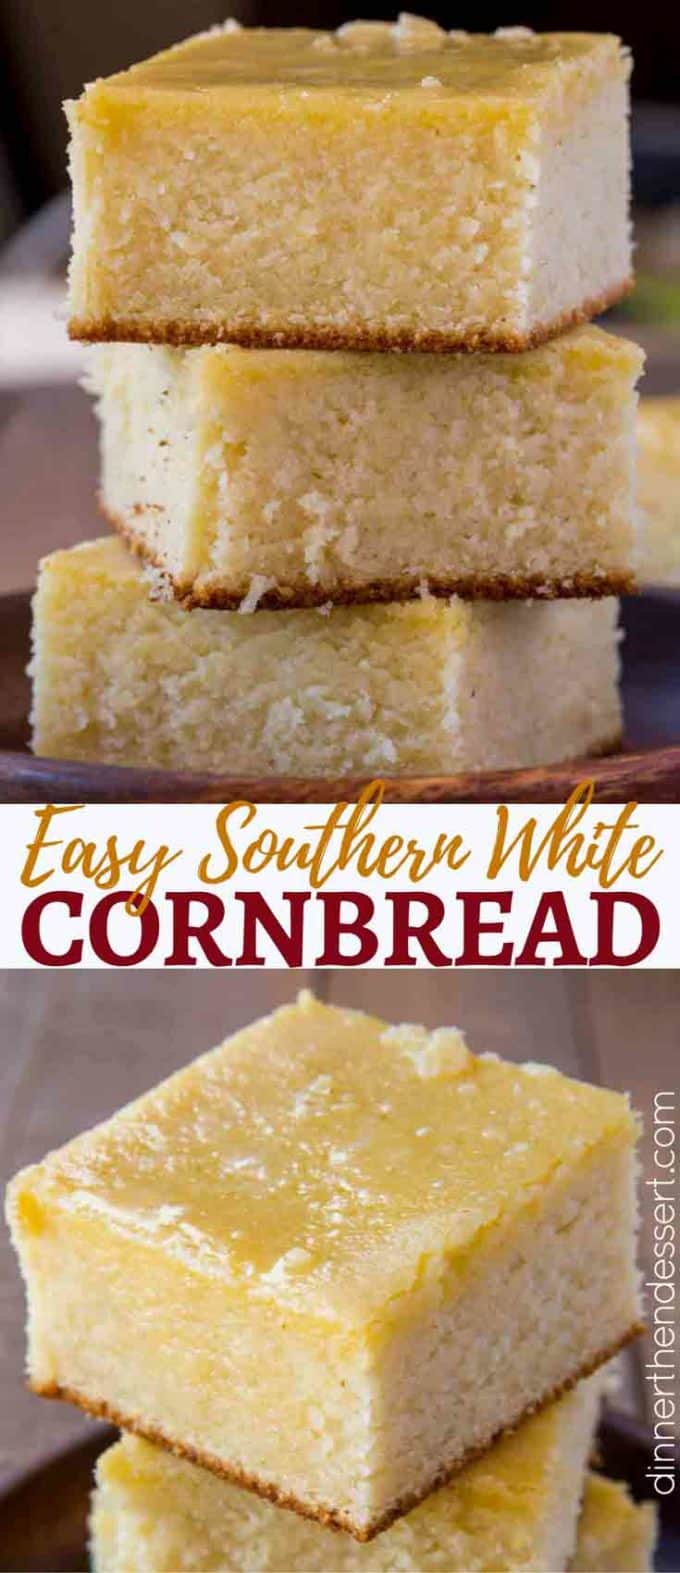 Quick and Easy to make, this Southern Cornbread is perfect and not too sweet!